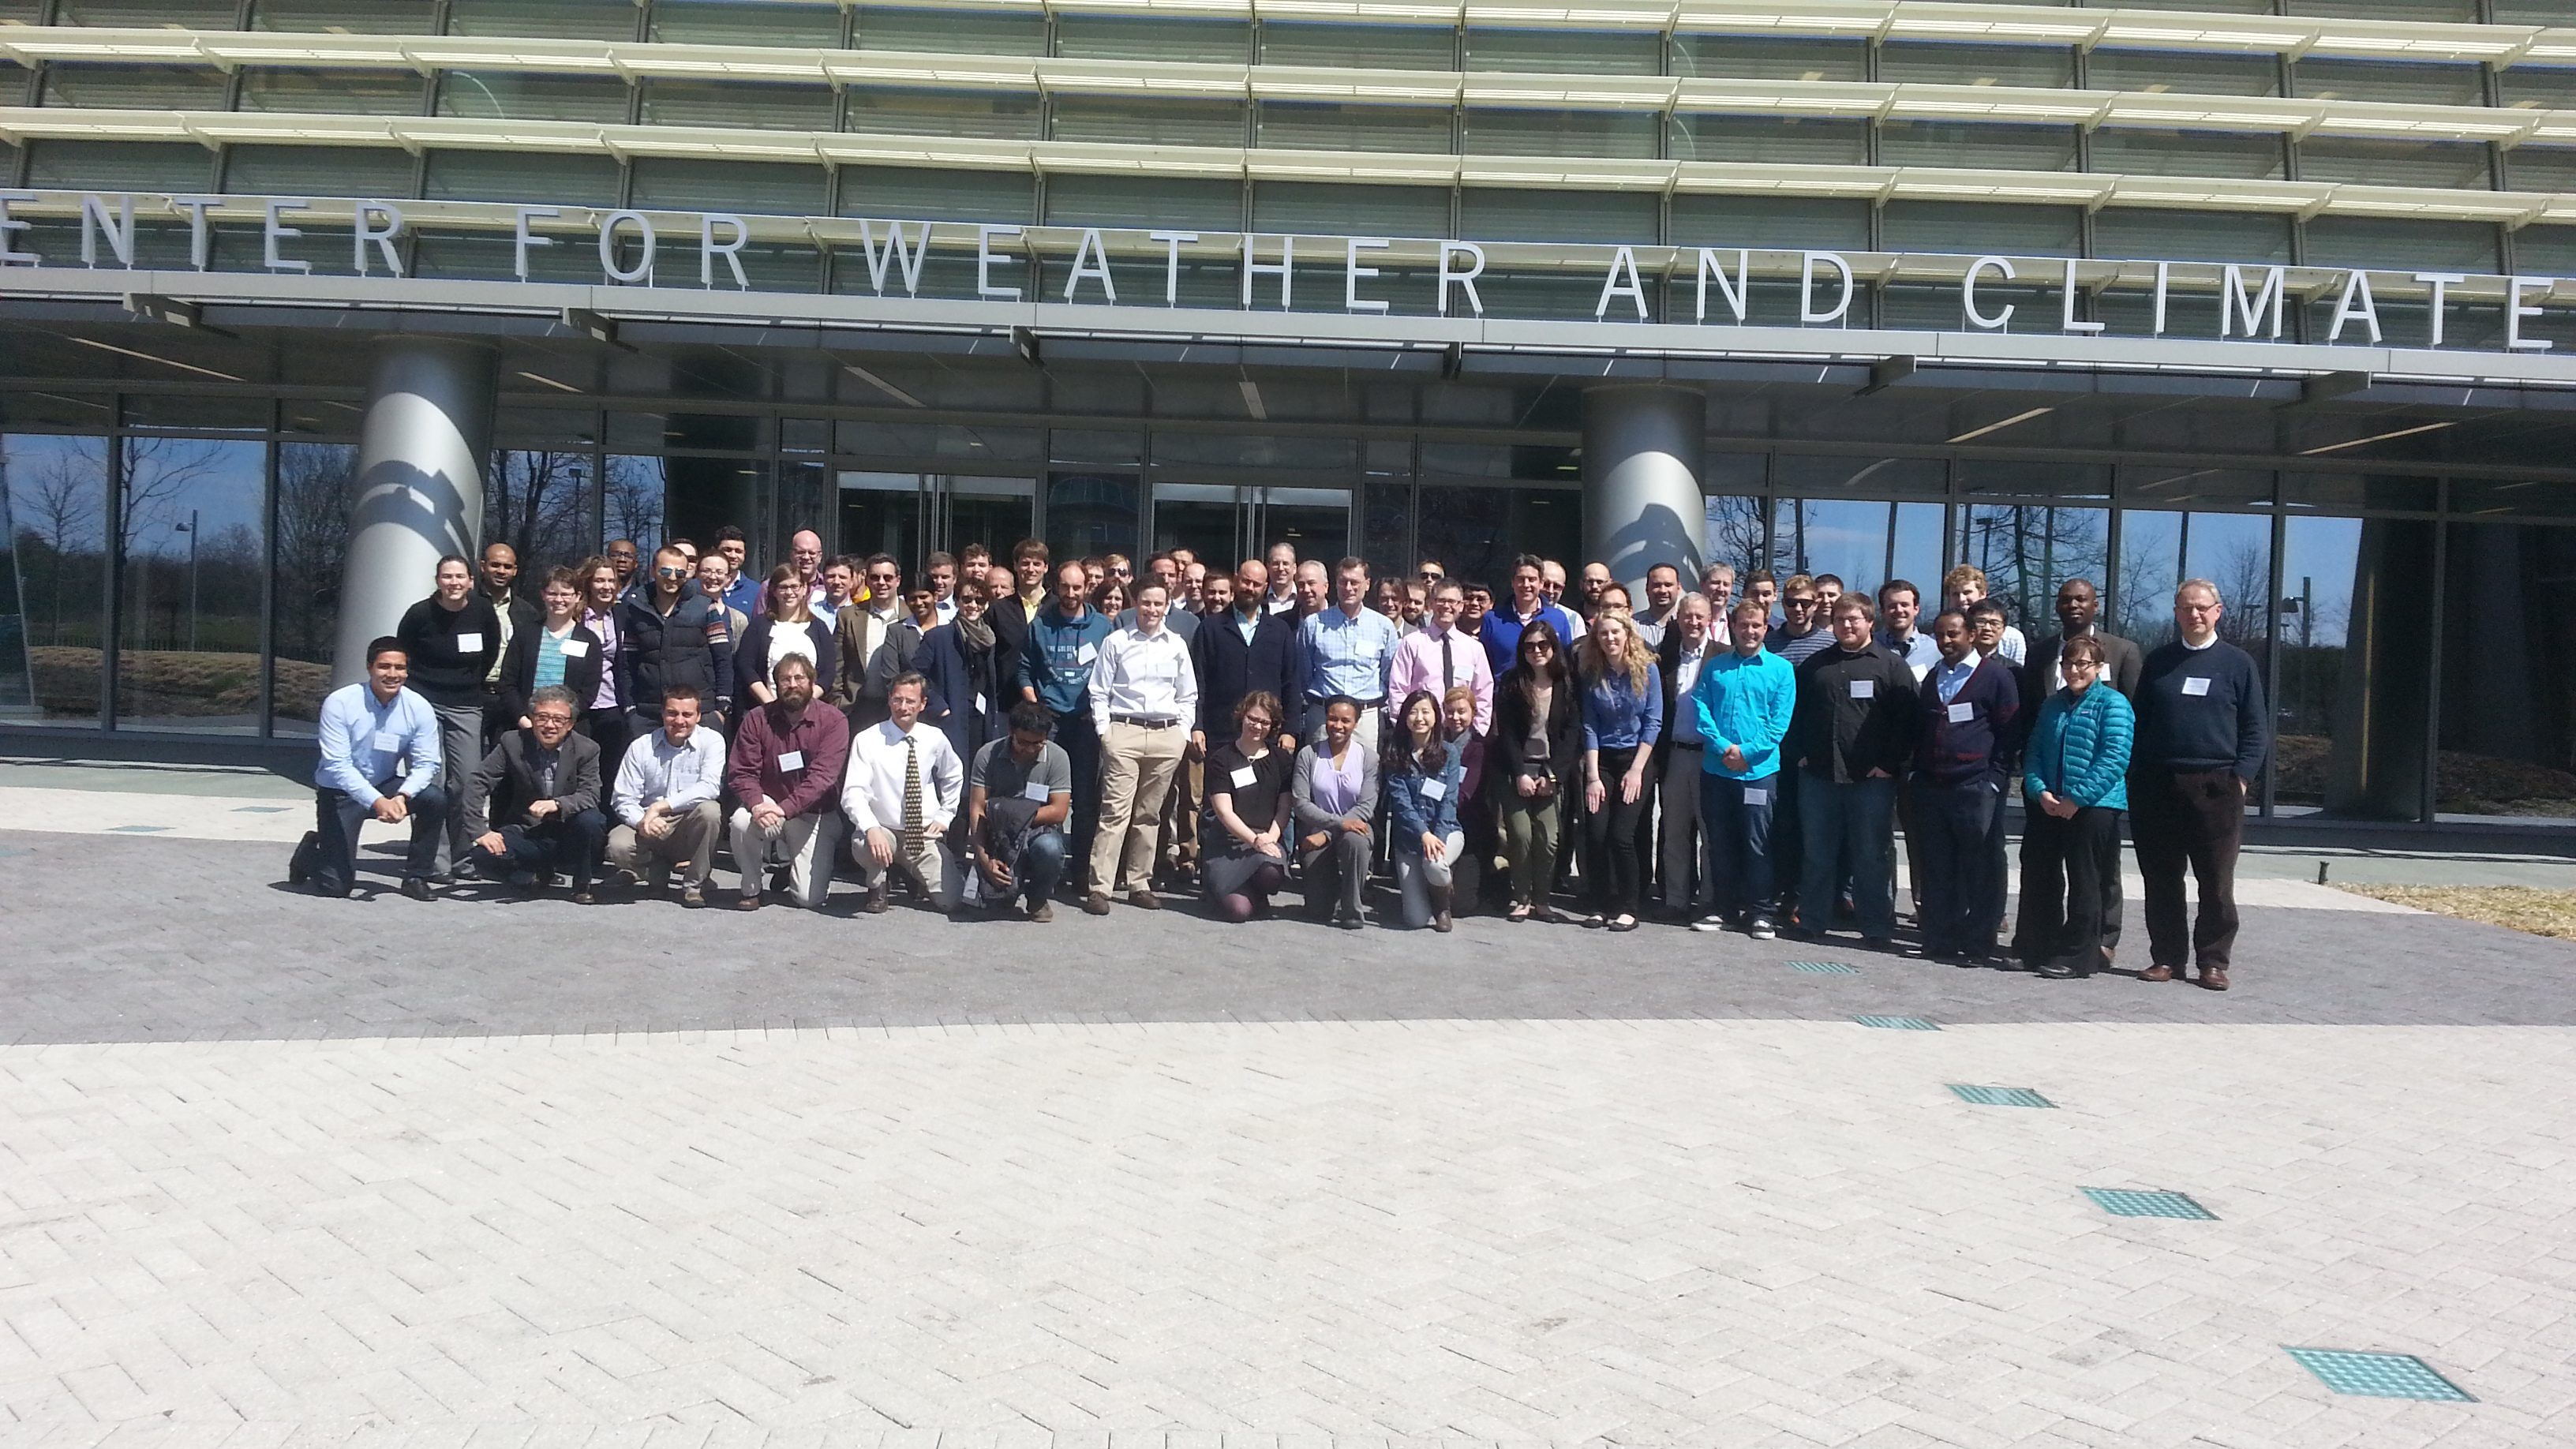 ADCIRC Workshop 2015 group picture 2